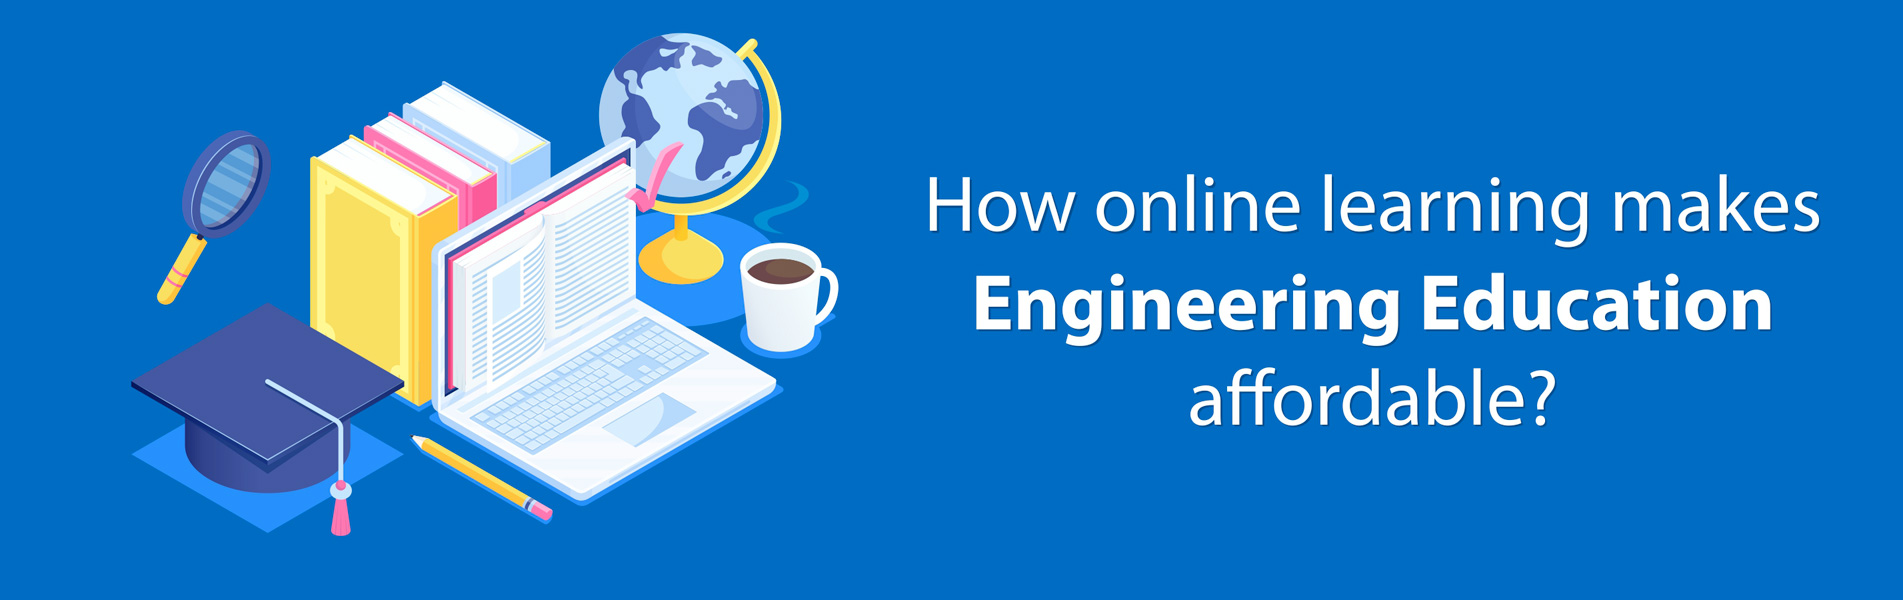 How-online-learning-makes-Engineering-education-affordable